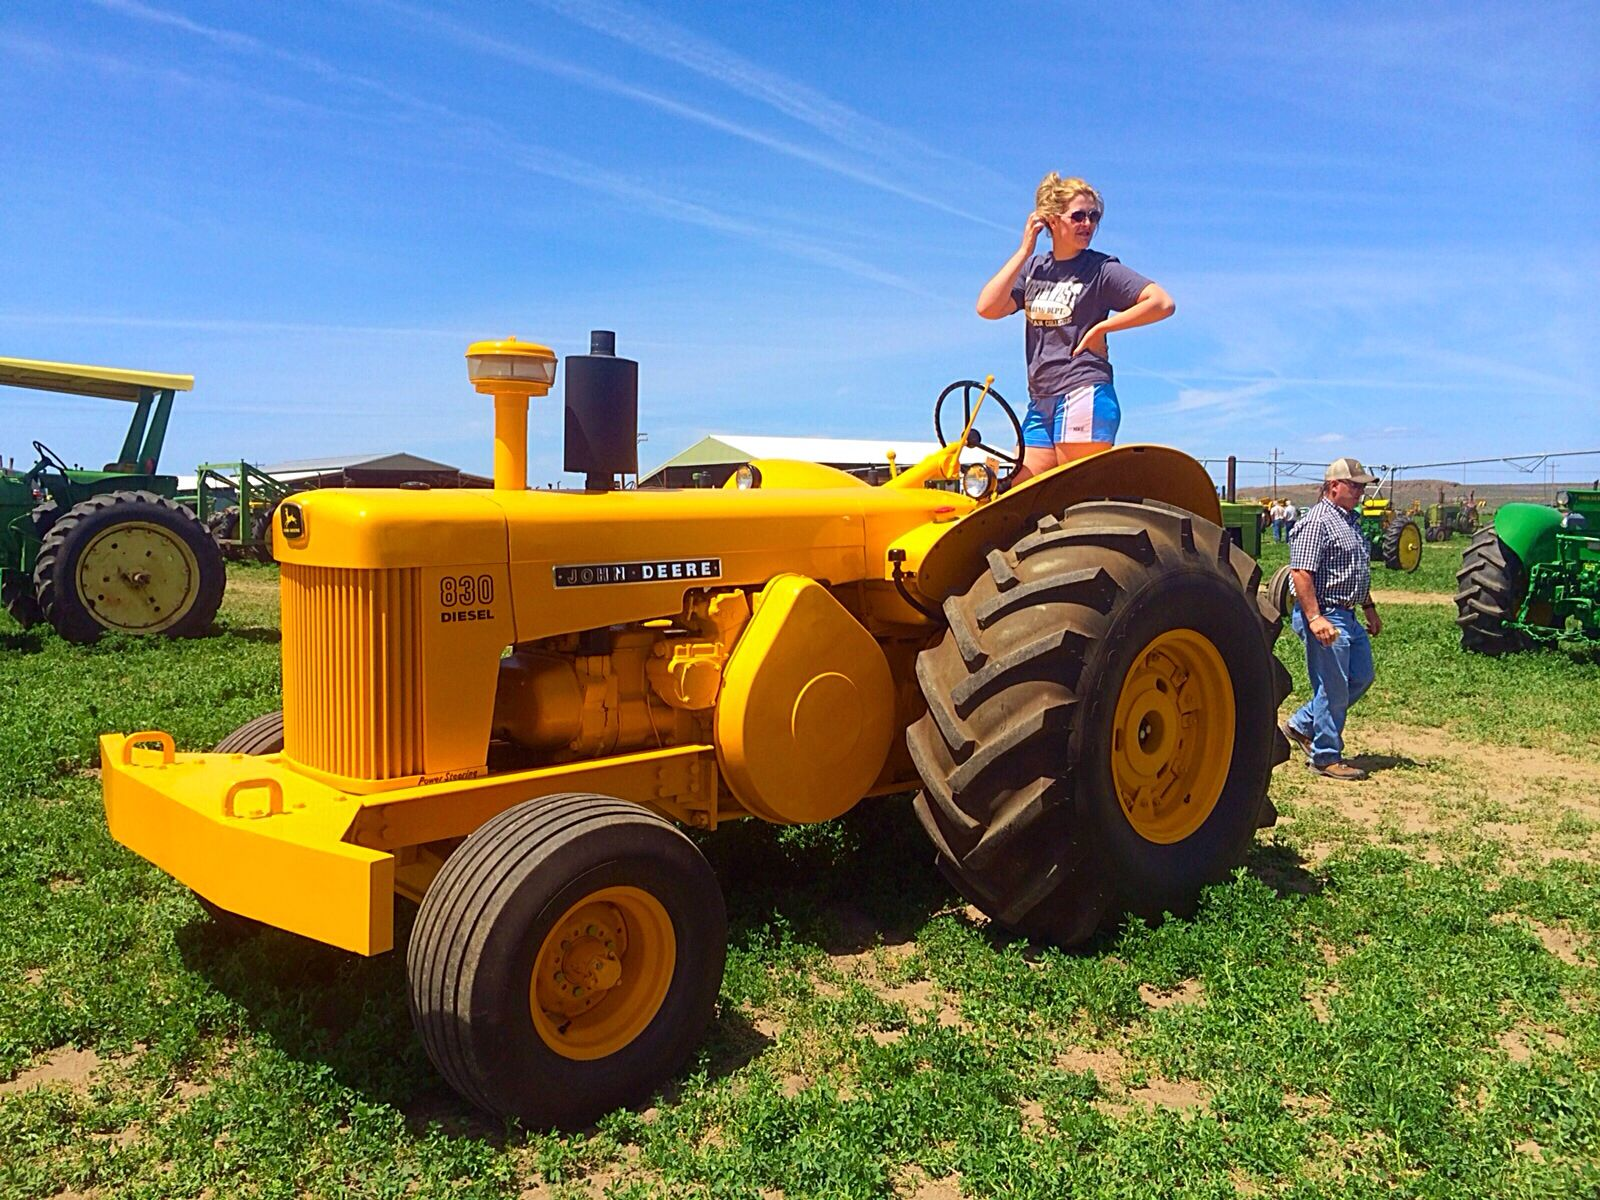 Good time at the John Deere auction today.75.6hp John Deere 830 industrial  tractor